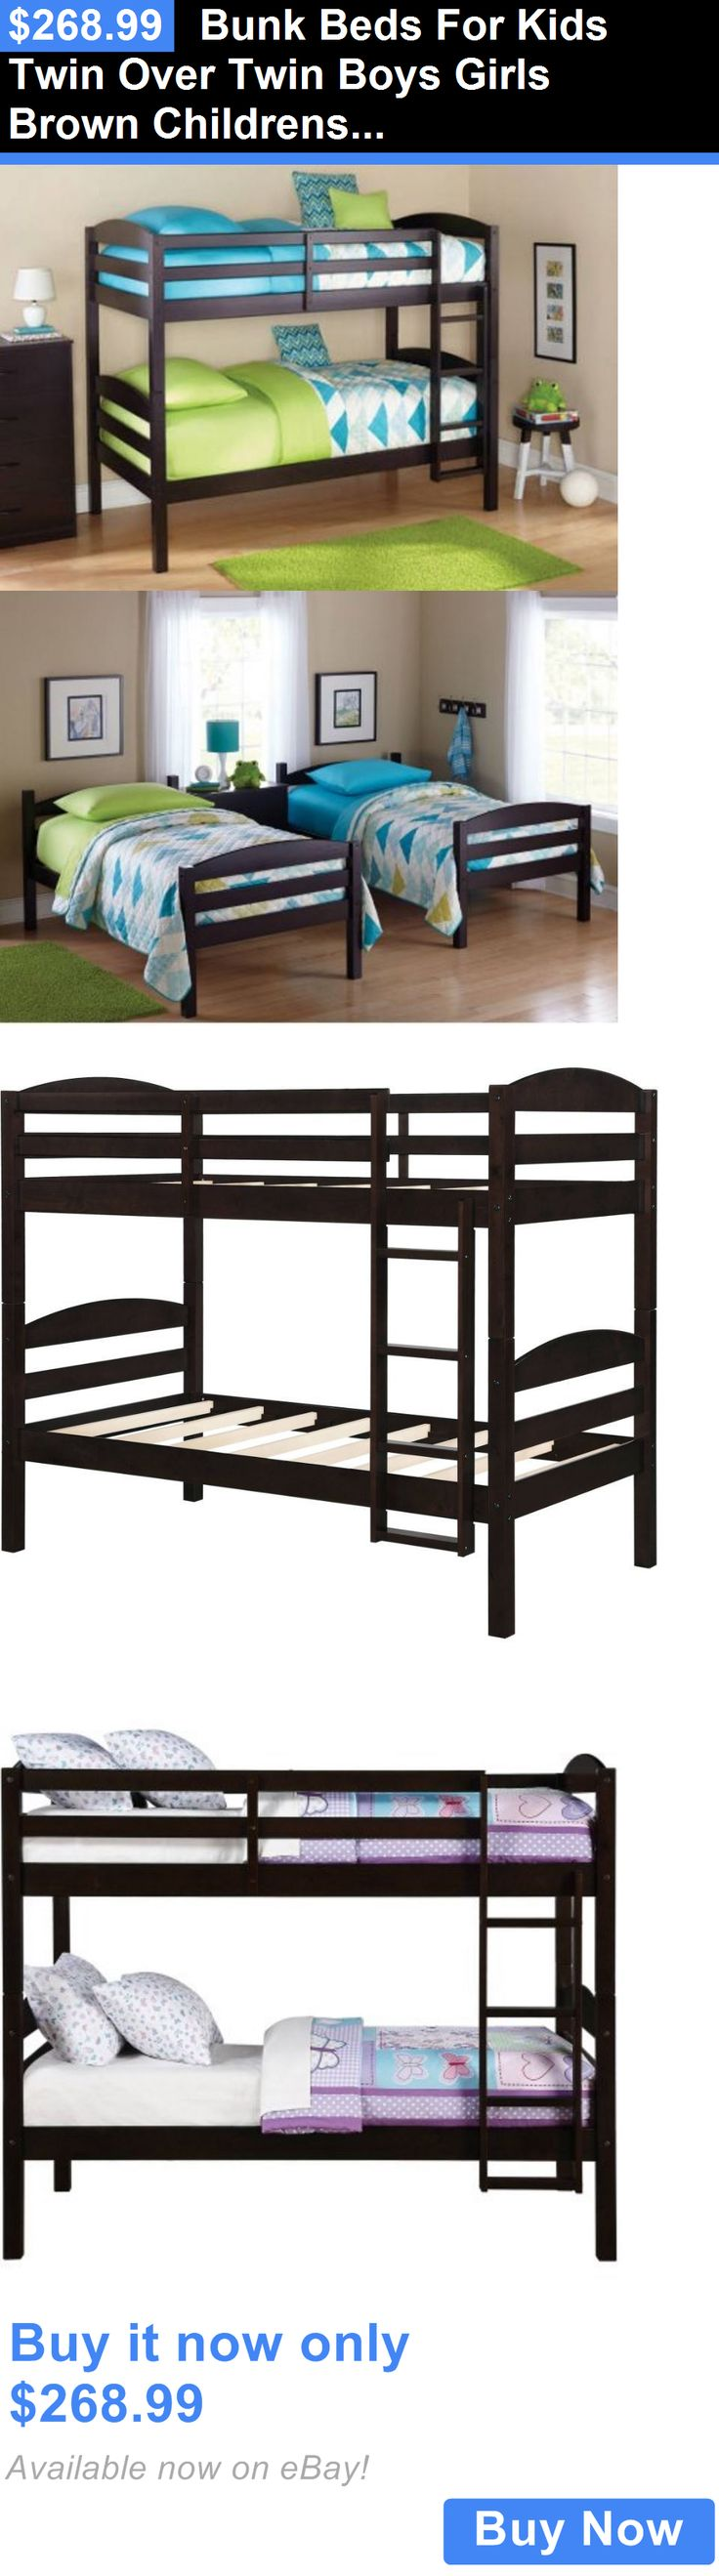 Kids Furniture: Bunk Beds For Kids Twin Over Twin Boys Girls Brown Childrens Bedroom Furniture BUY IT NOW ONLY: $268.99